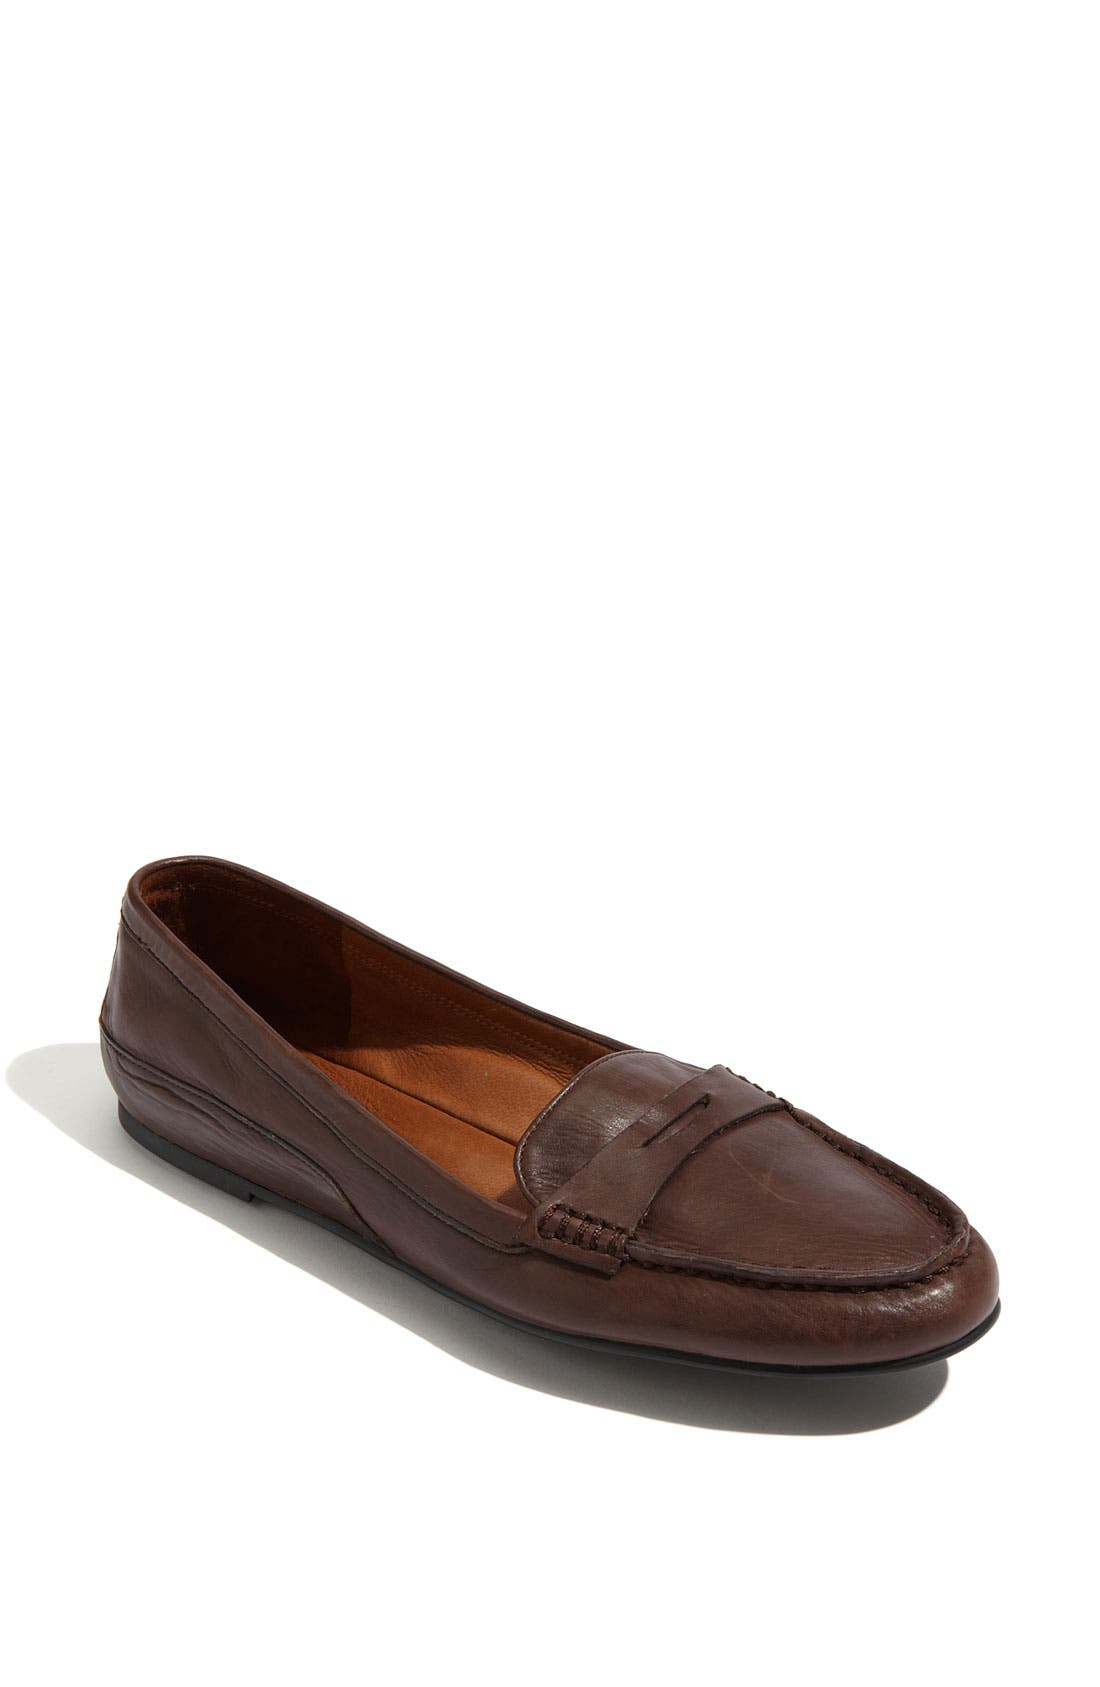 Main Image - Gentle Souls 'Lucky Bet' Loafer